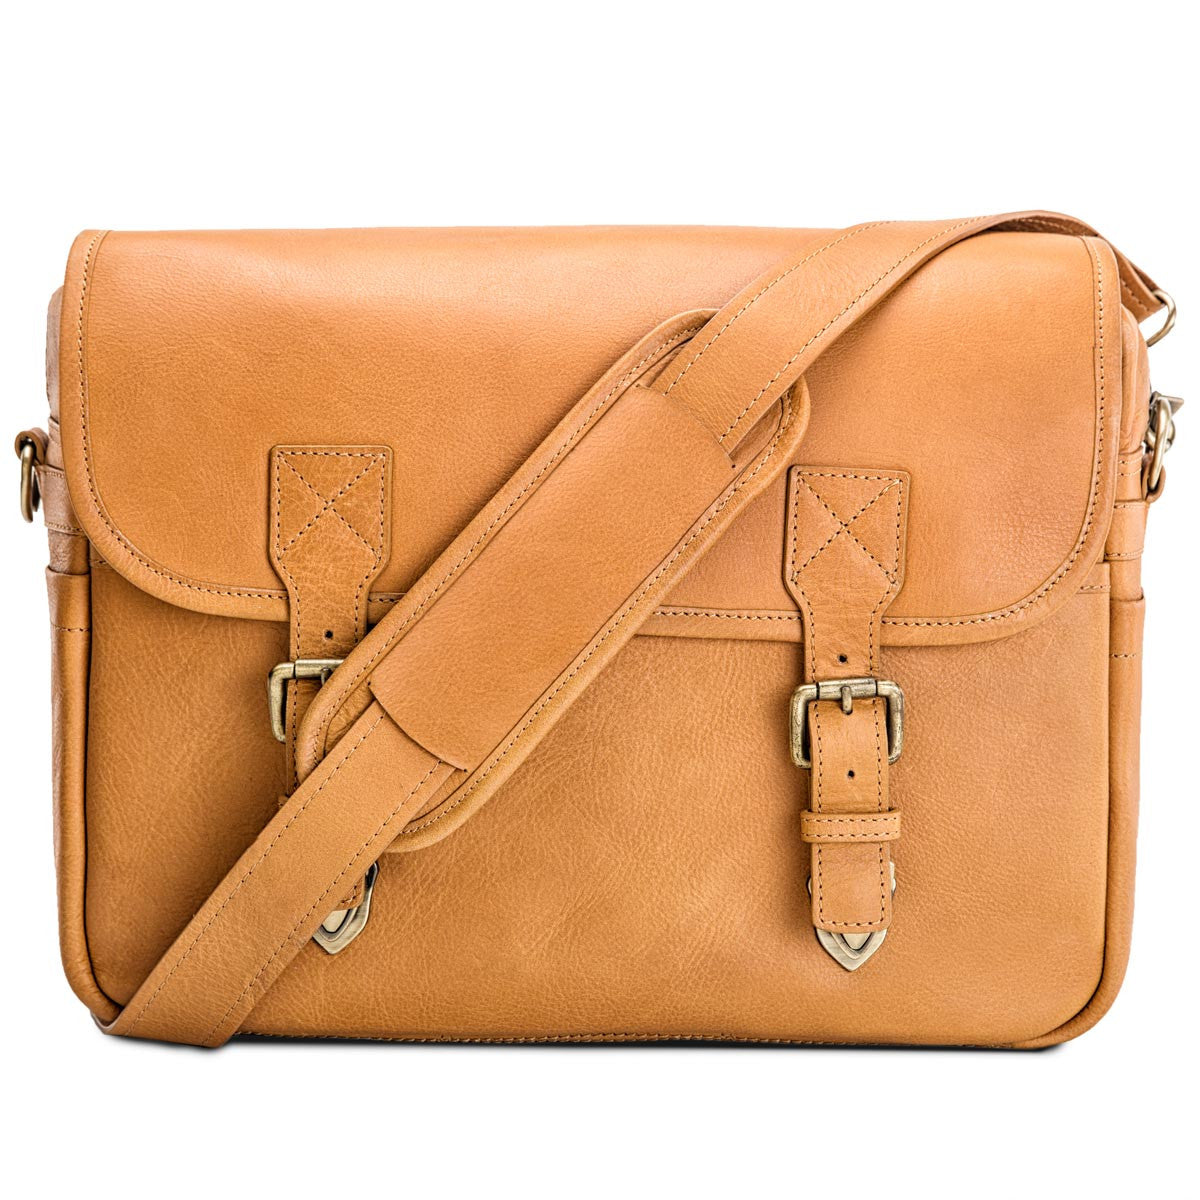 0e43d2807ab Rimo I in tan leather, stylish dslr camera messenger bag by Blackforest bags  ...